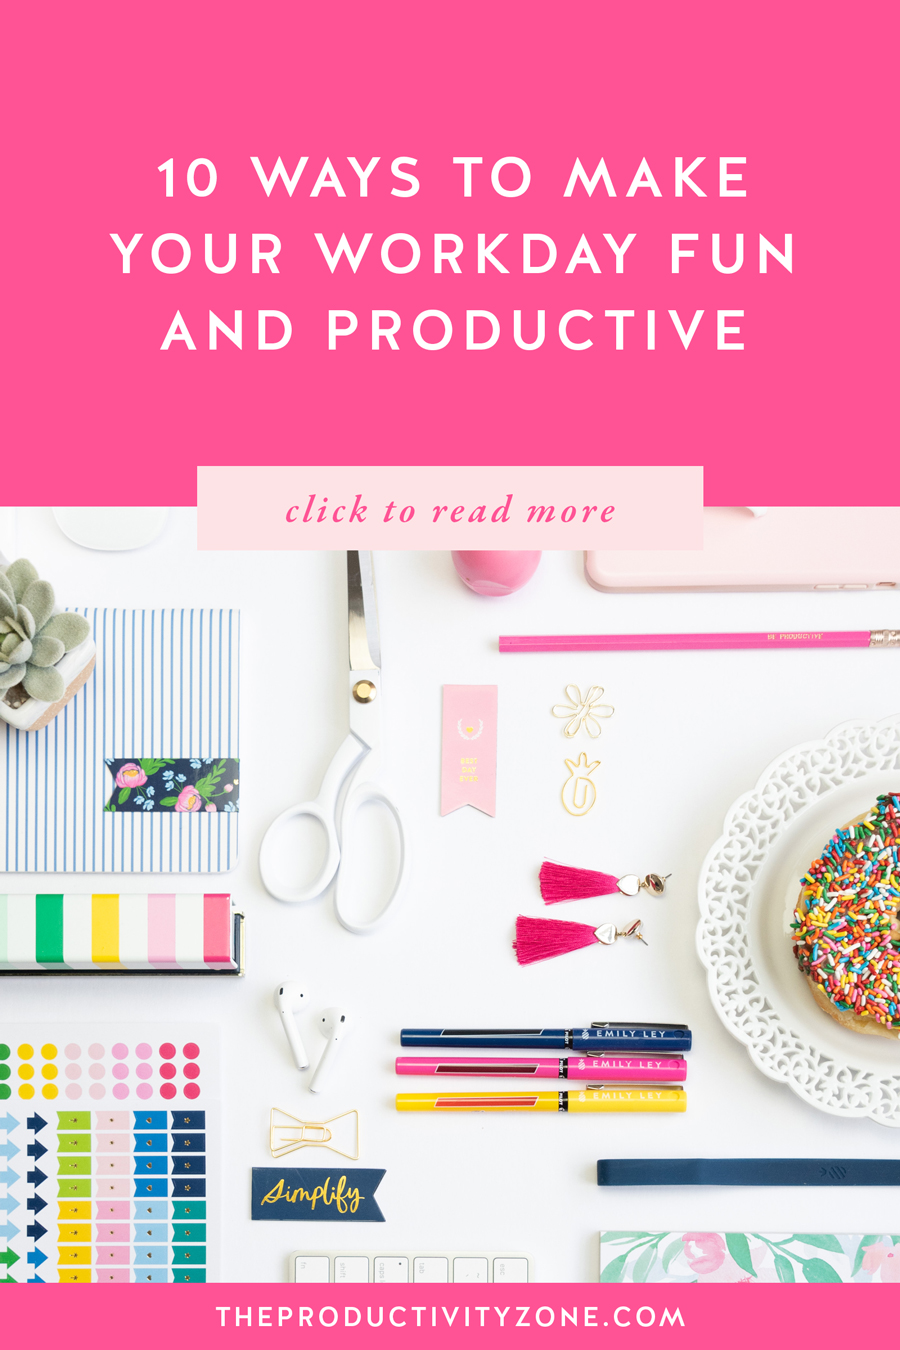 Because some work tasks will (probably always) feel like a job… Check out 10 super simple ways to make your workday fun AND productive on The Productivity Zone!!